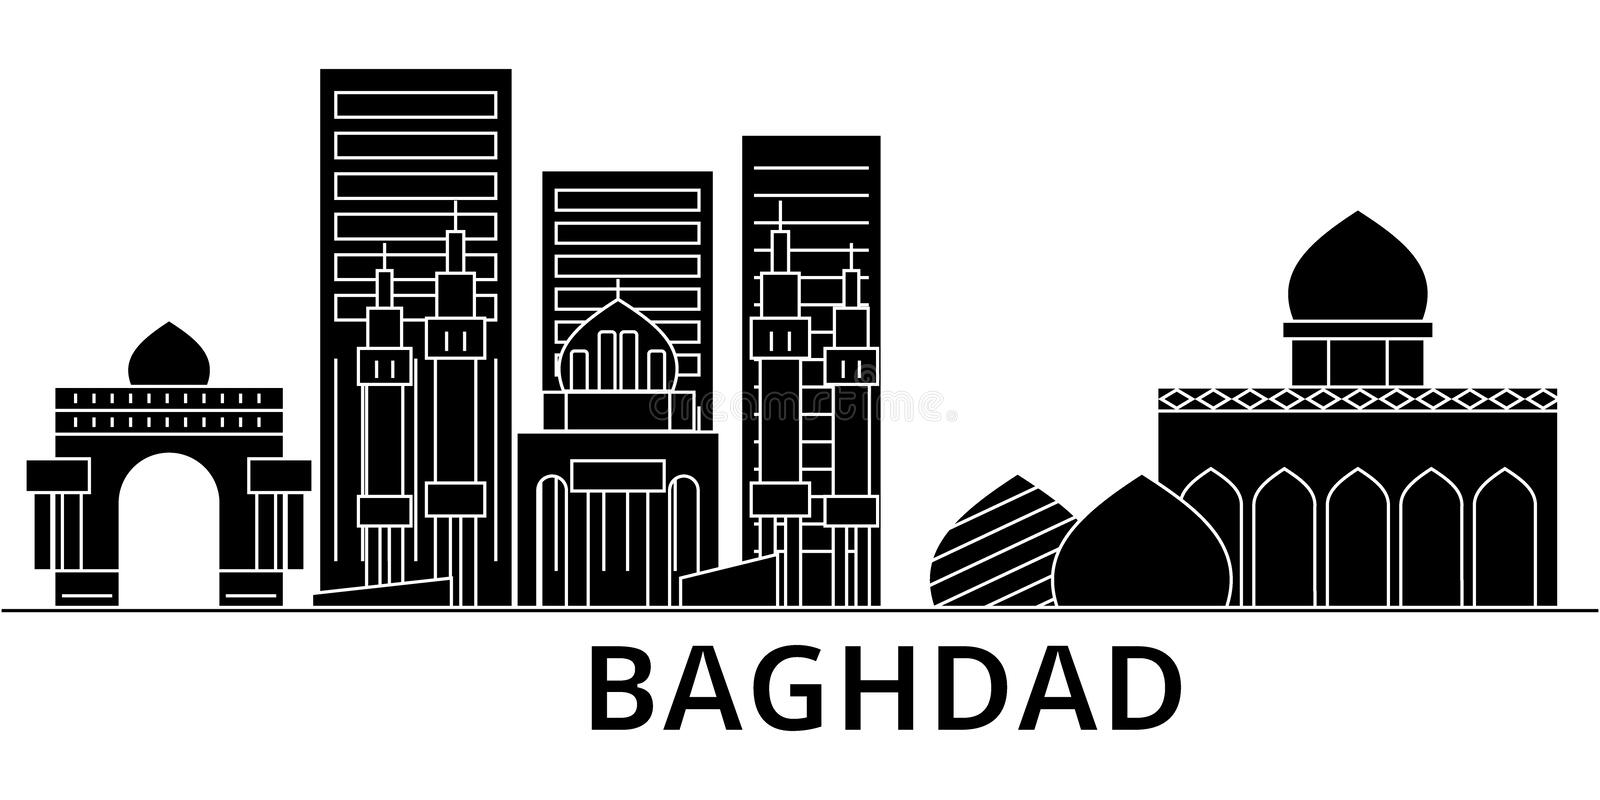 Baghdad architecture vector city skyline, travel cityscape with landmarks, buildings, isolated sights on background. Baghdad architecture vector city skyline vector illustration